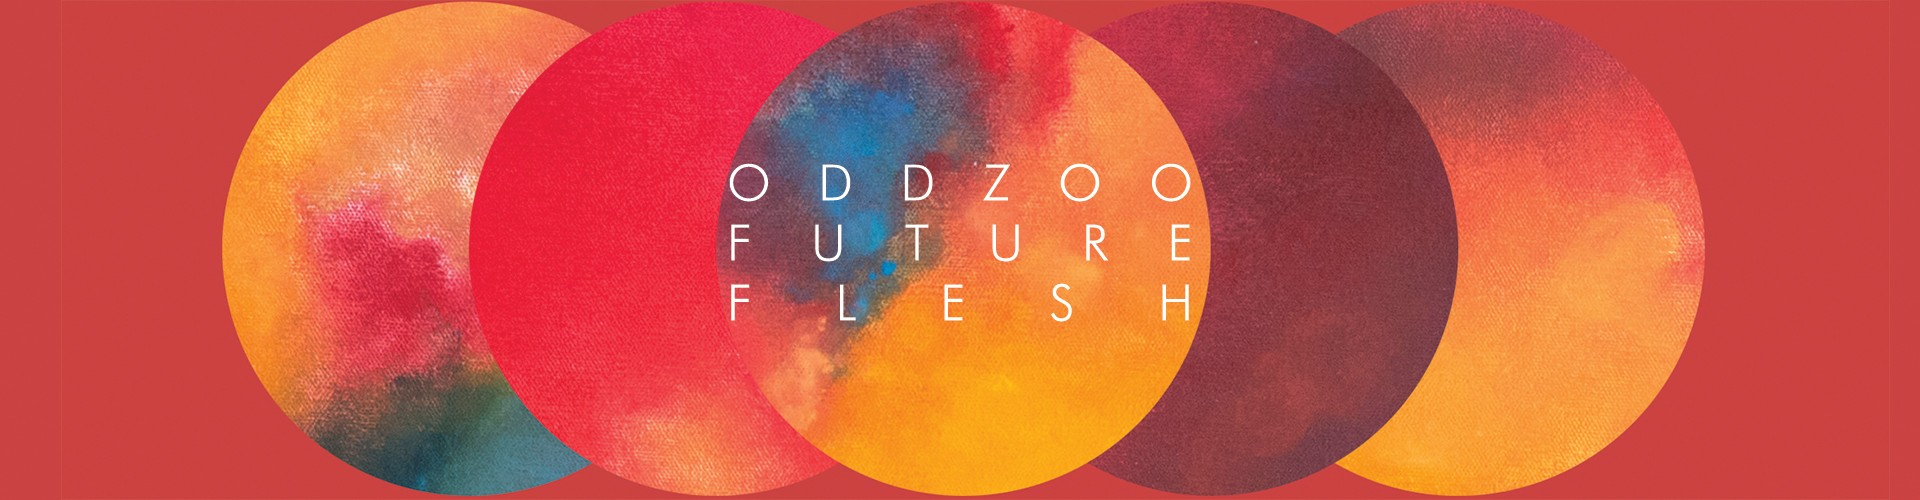 "OddZoo ""Future Flesh"""